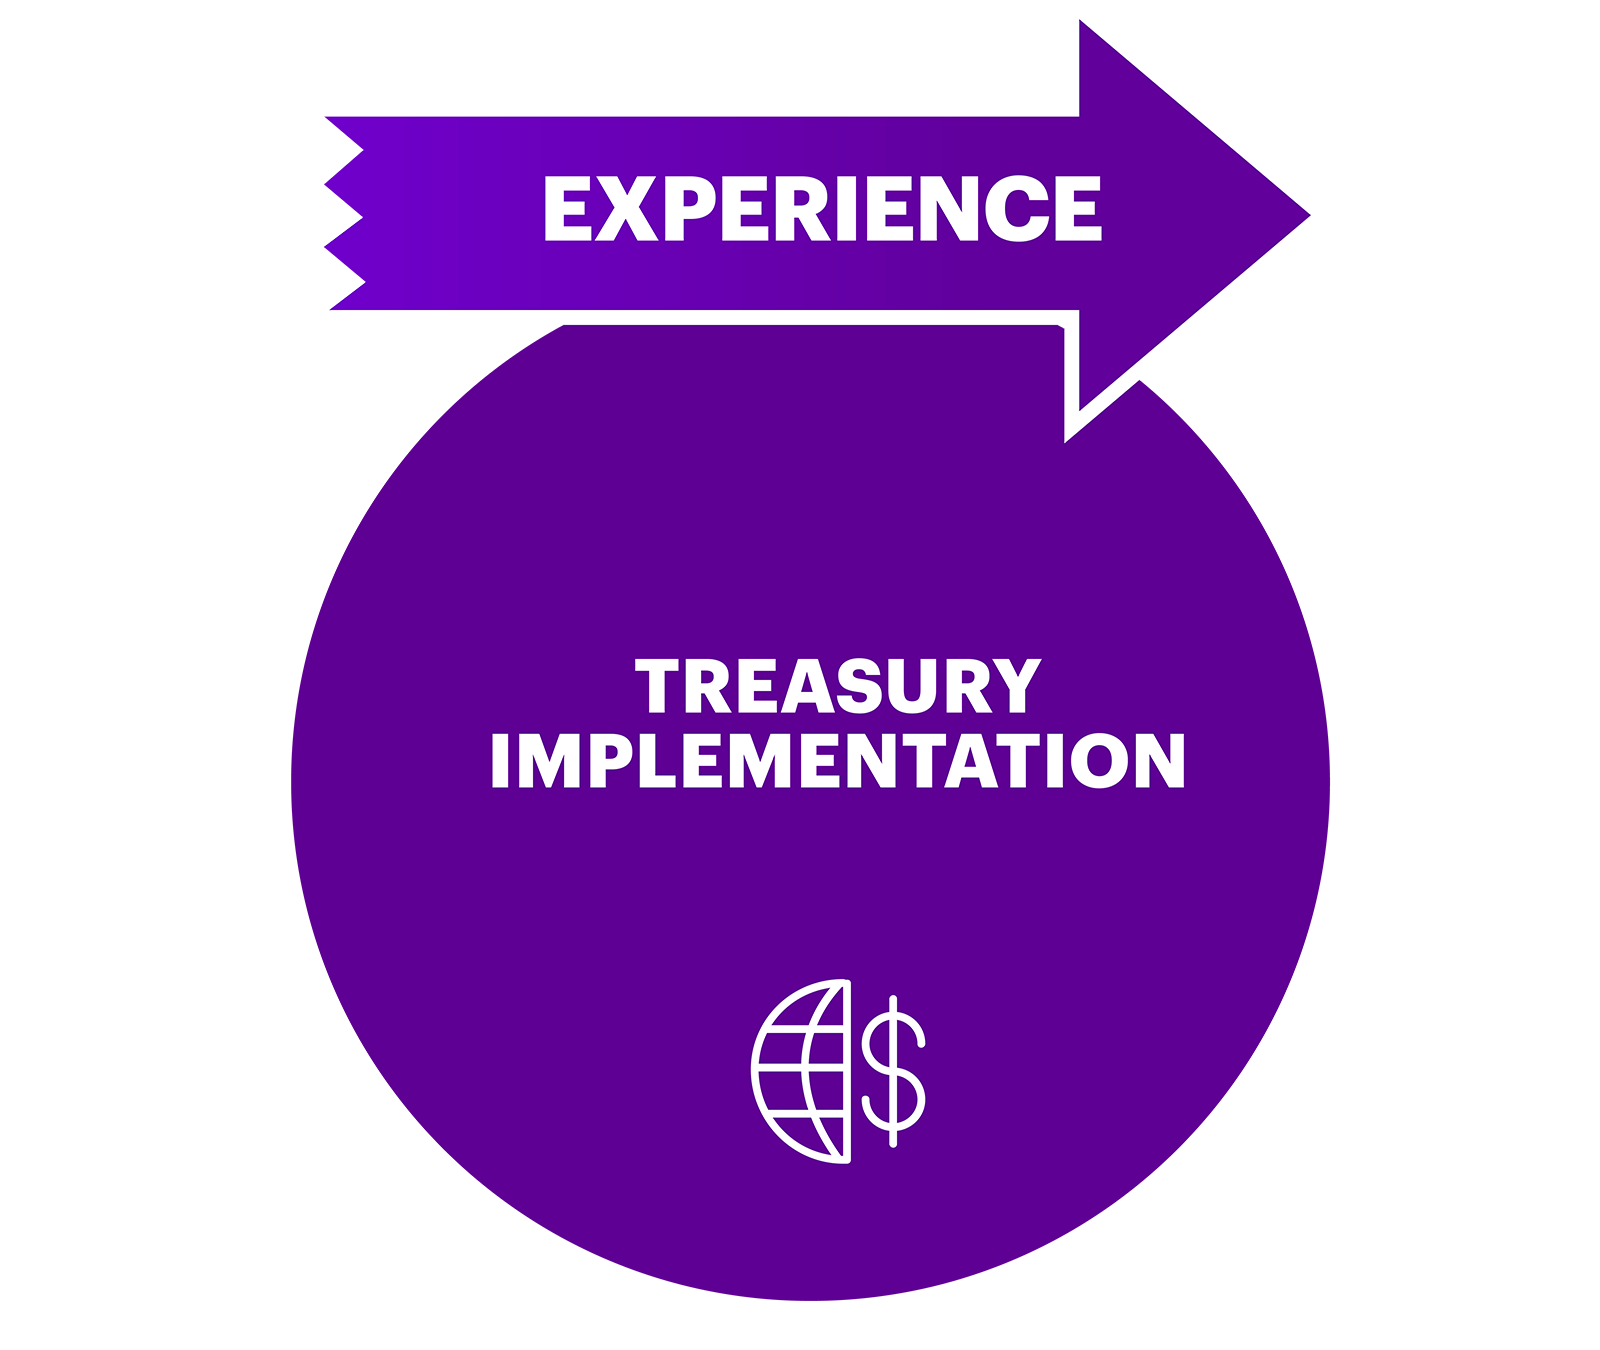 TREASURY IMPLEMENTATION